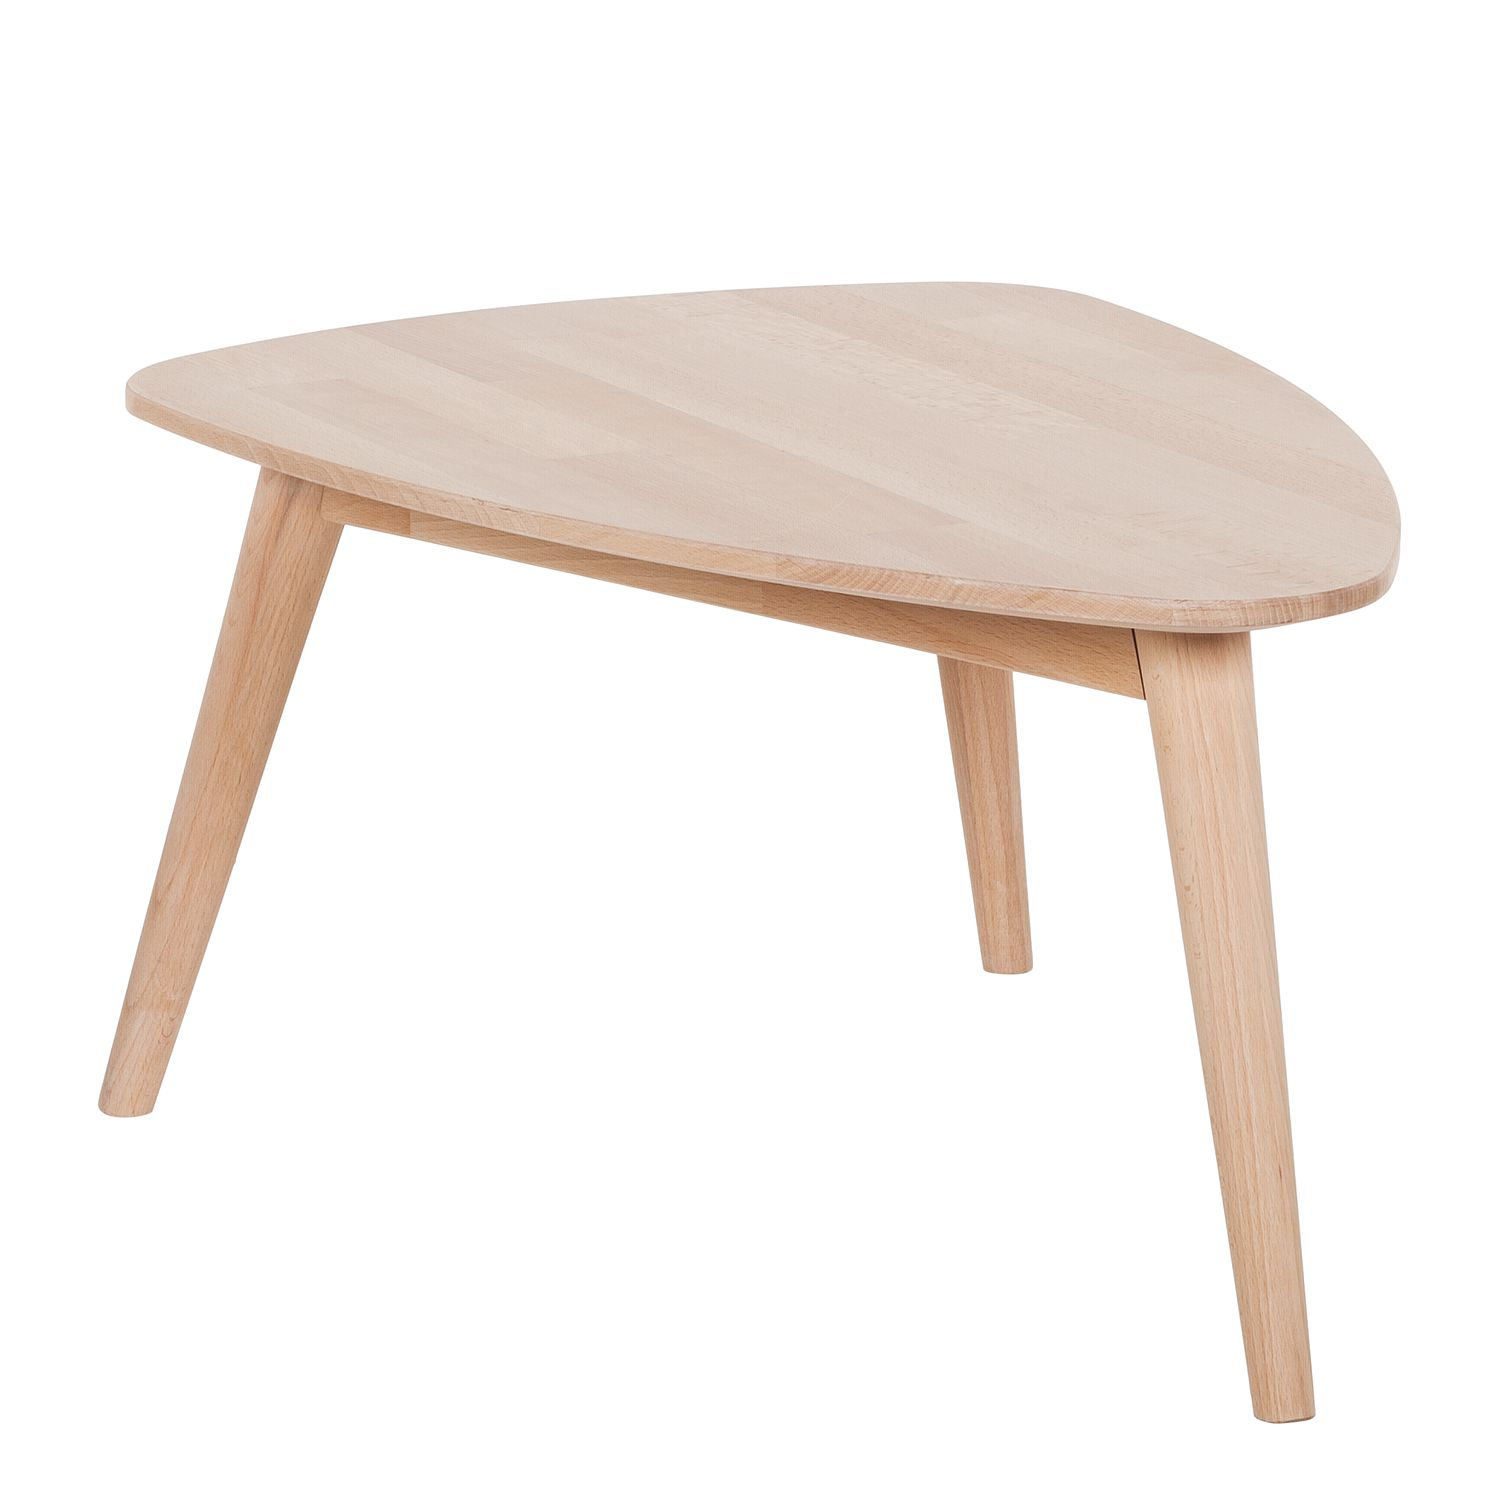 Table basse Finsby - Hêtre massif - 70 x 50 cm, Morteens